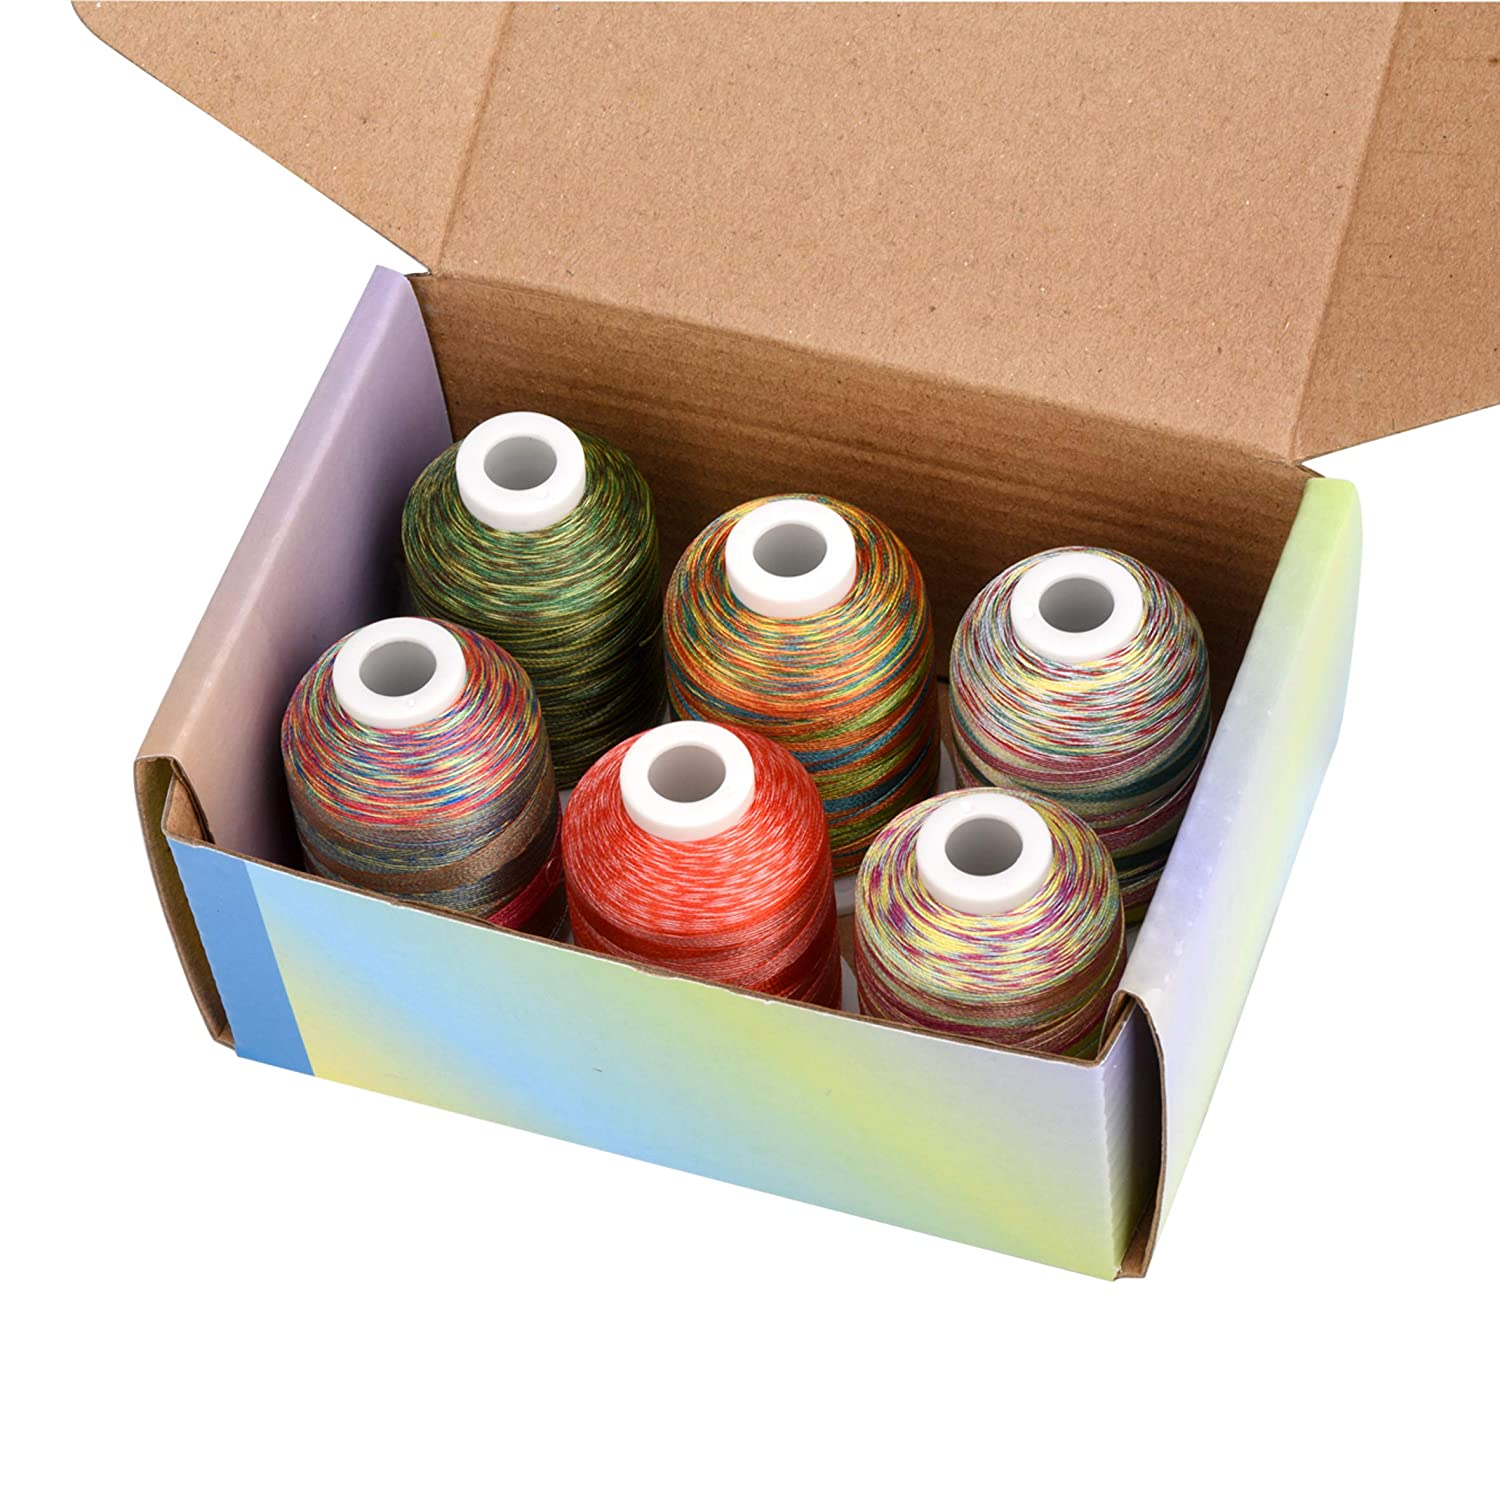 Simthread 6 Variegated 1100 Yards Polyester Embroidery Machine Thread for Decoration Babylock Singer Brother Janome Pfaff Bernina Husqvarna Embroidery and Sewing Machines Anemone Garden 1000M